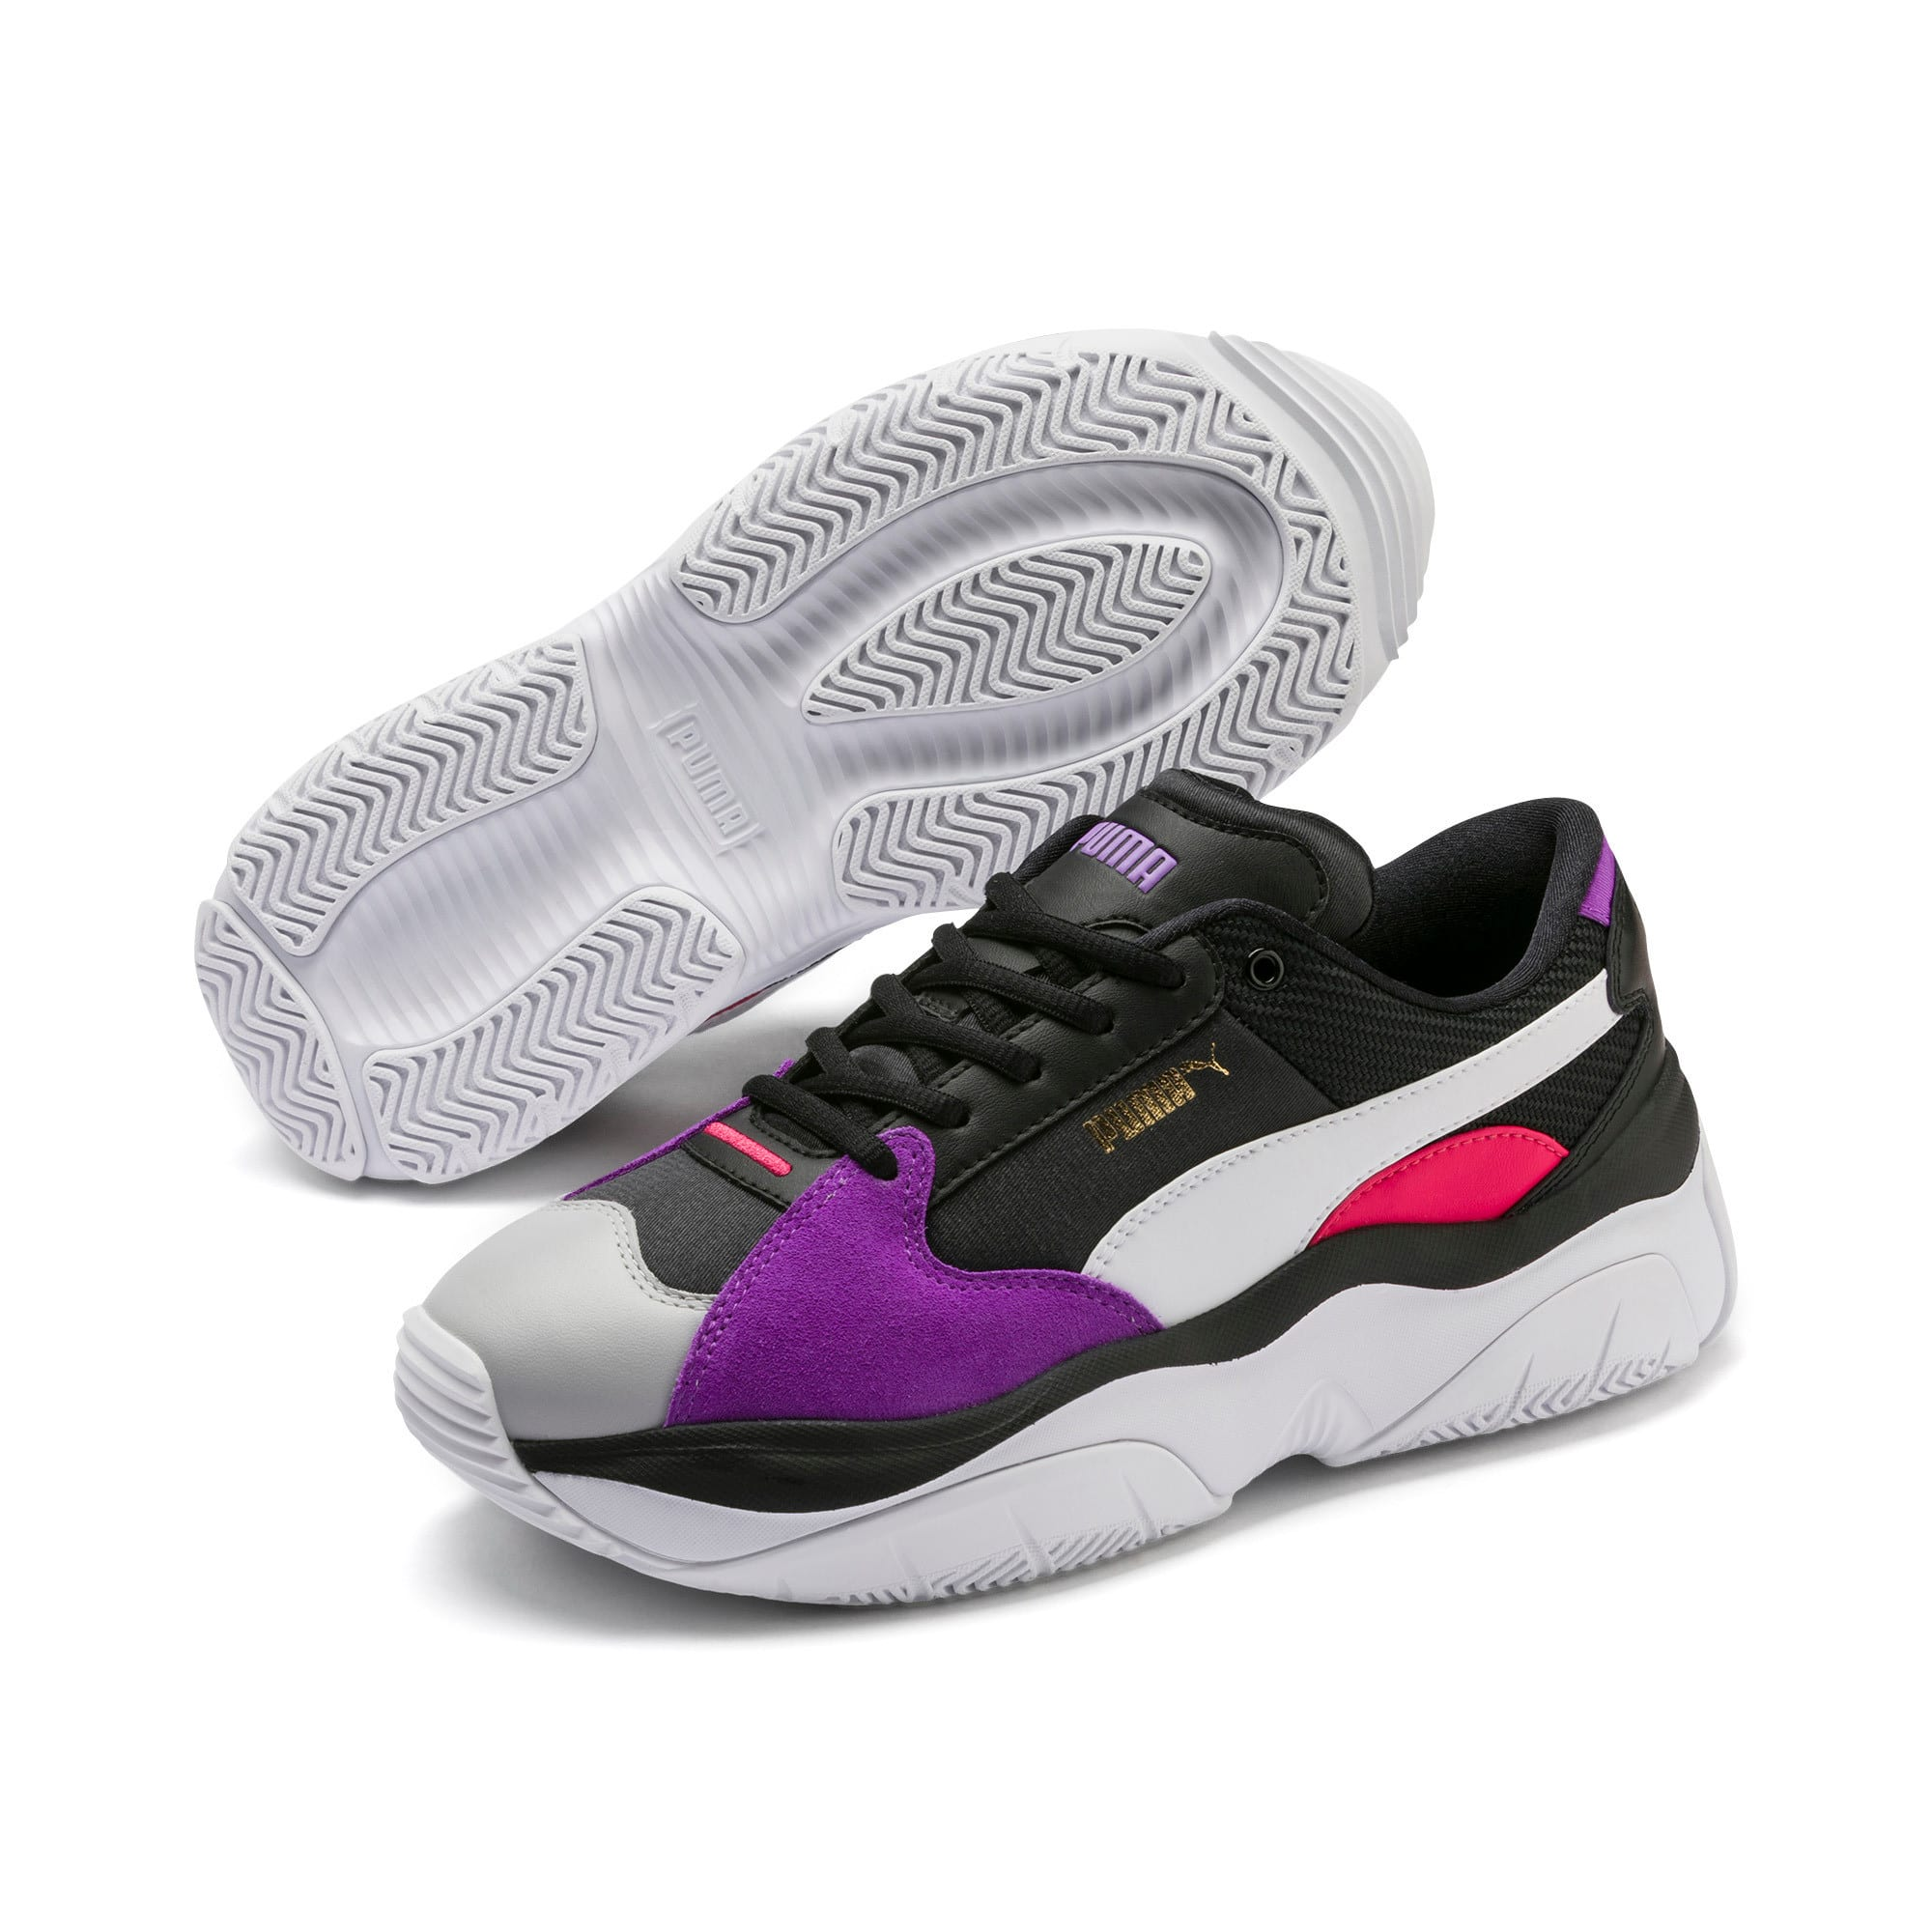 Thumbnail 3 of STORM.Y Damen Sneaker, Puma Black-Gray Violet, medium